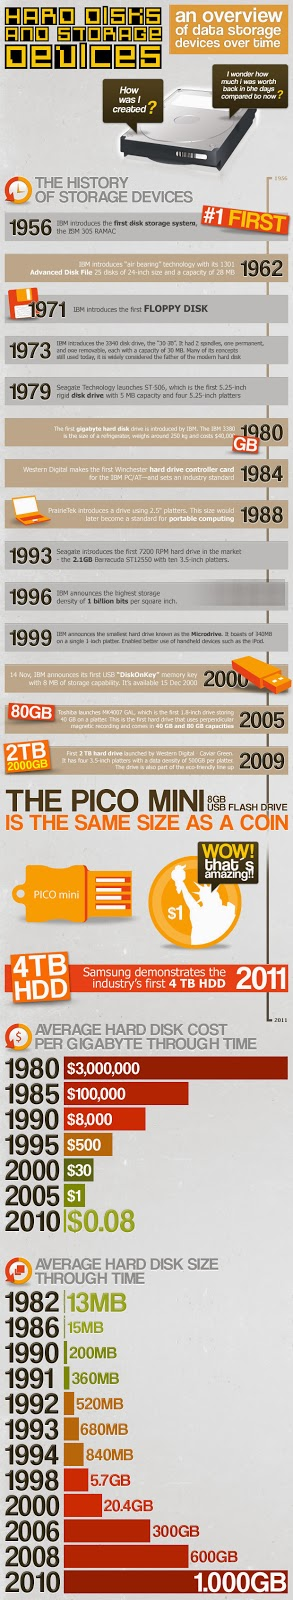 An overview of data storage devices over time